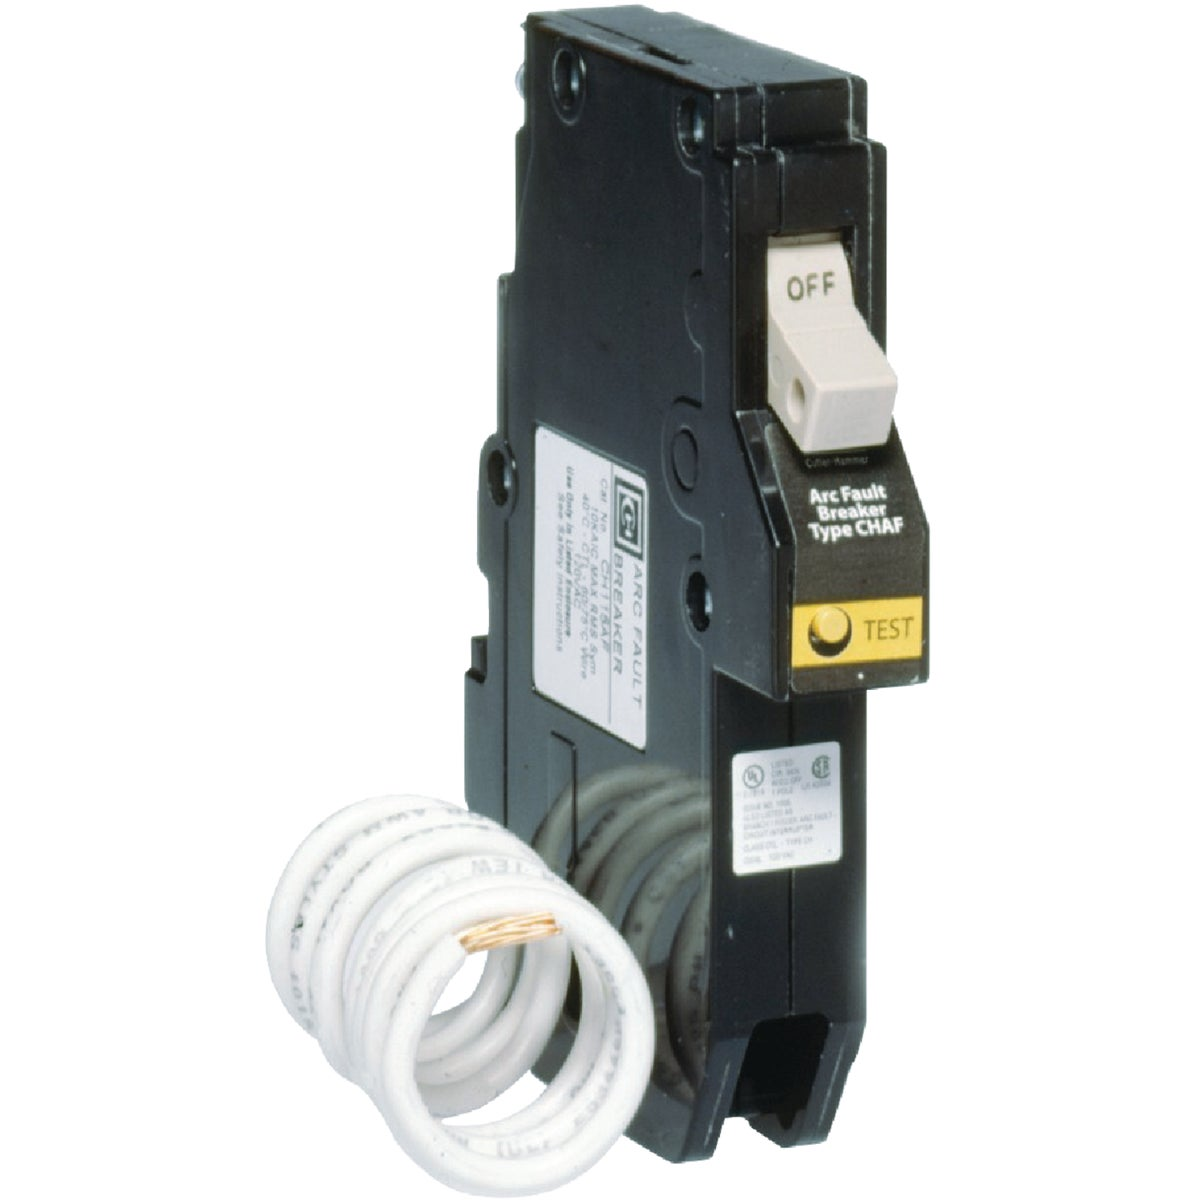 15A AFCI CIRCUIT BREAKER - CHFCAF115 by Eaton Corporation